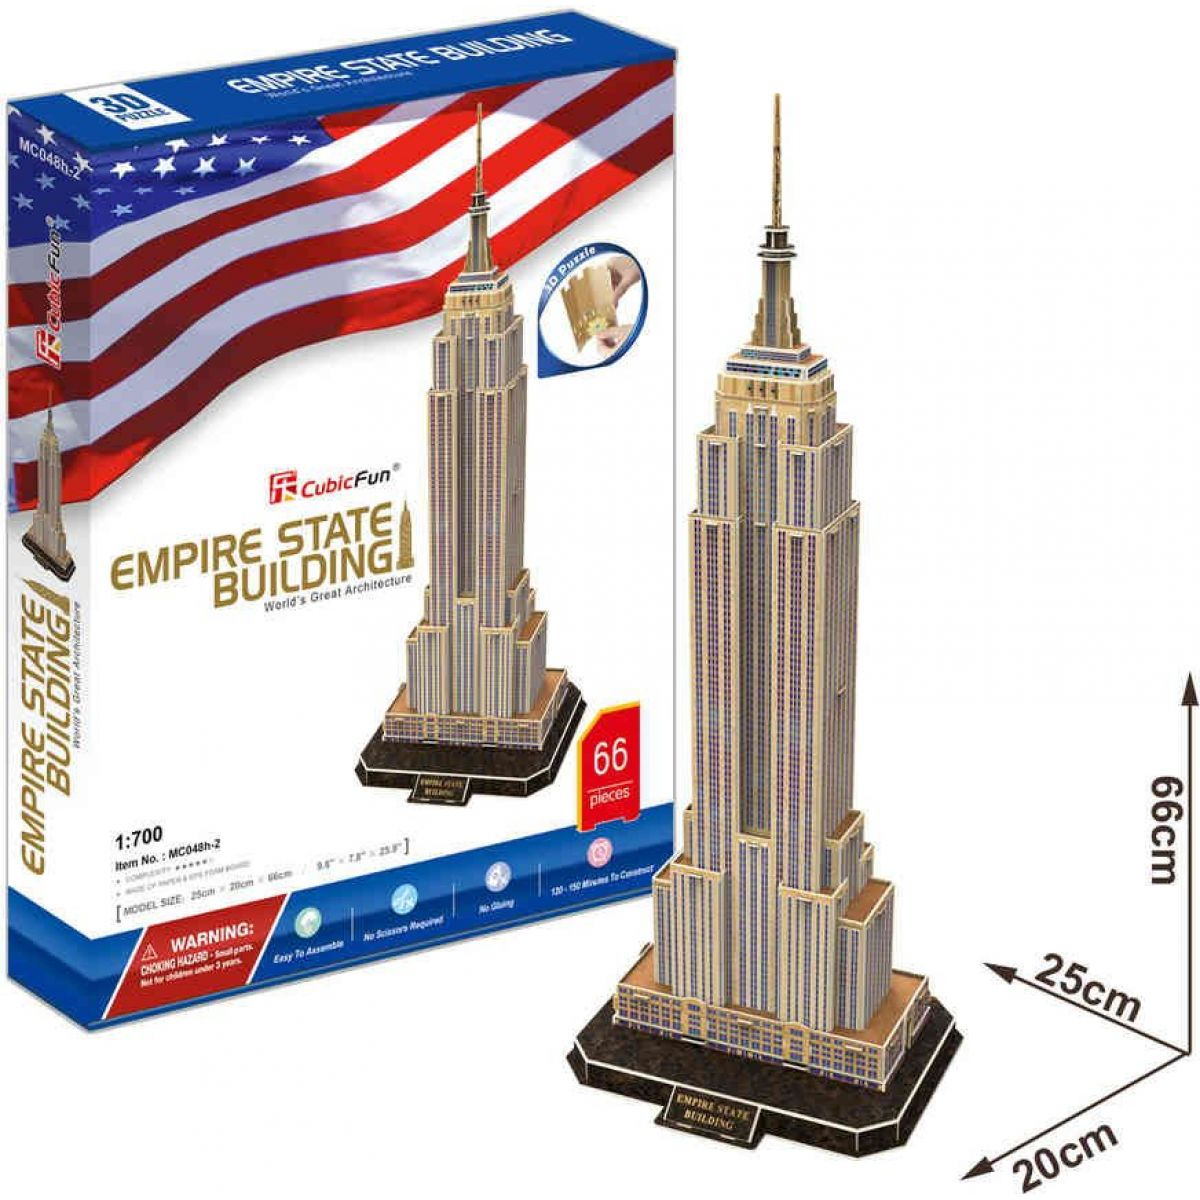 CUBIC FUN 3D puzzle Empire State Building New York